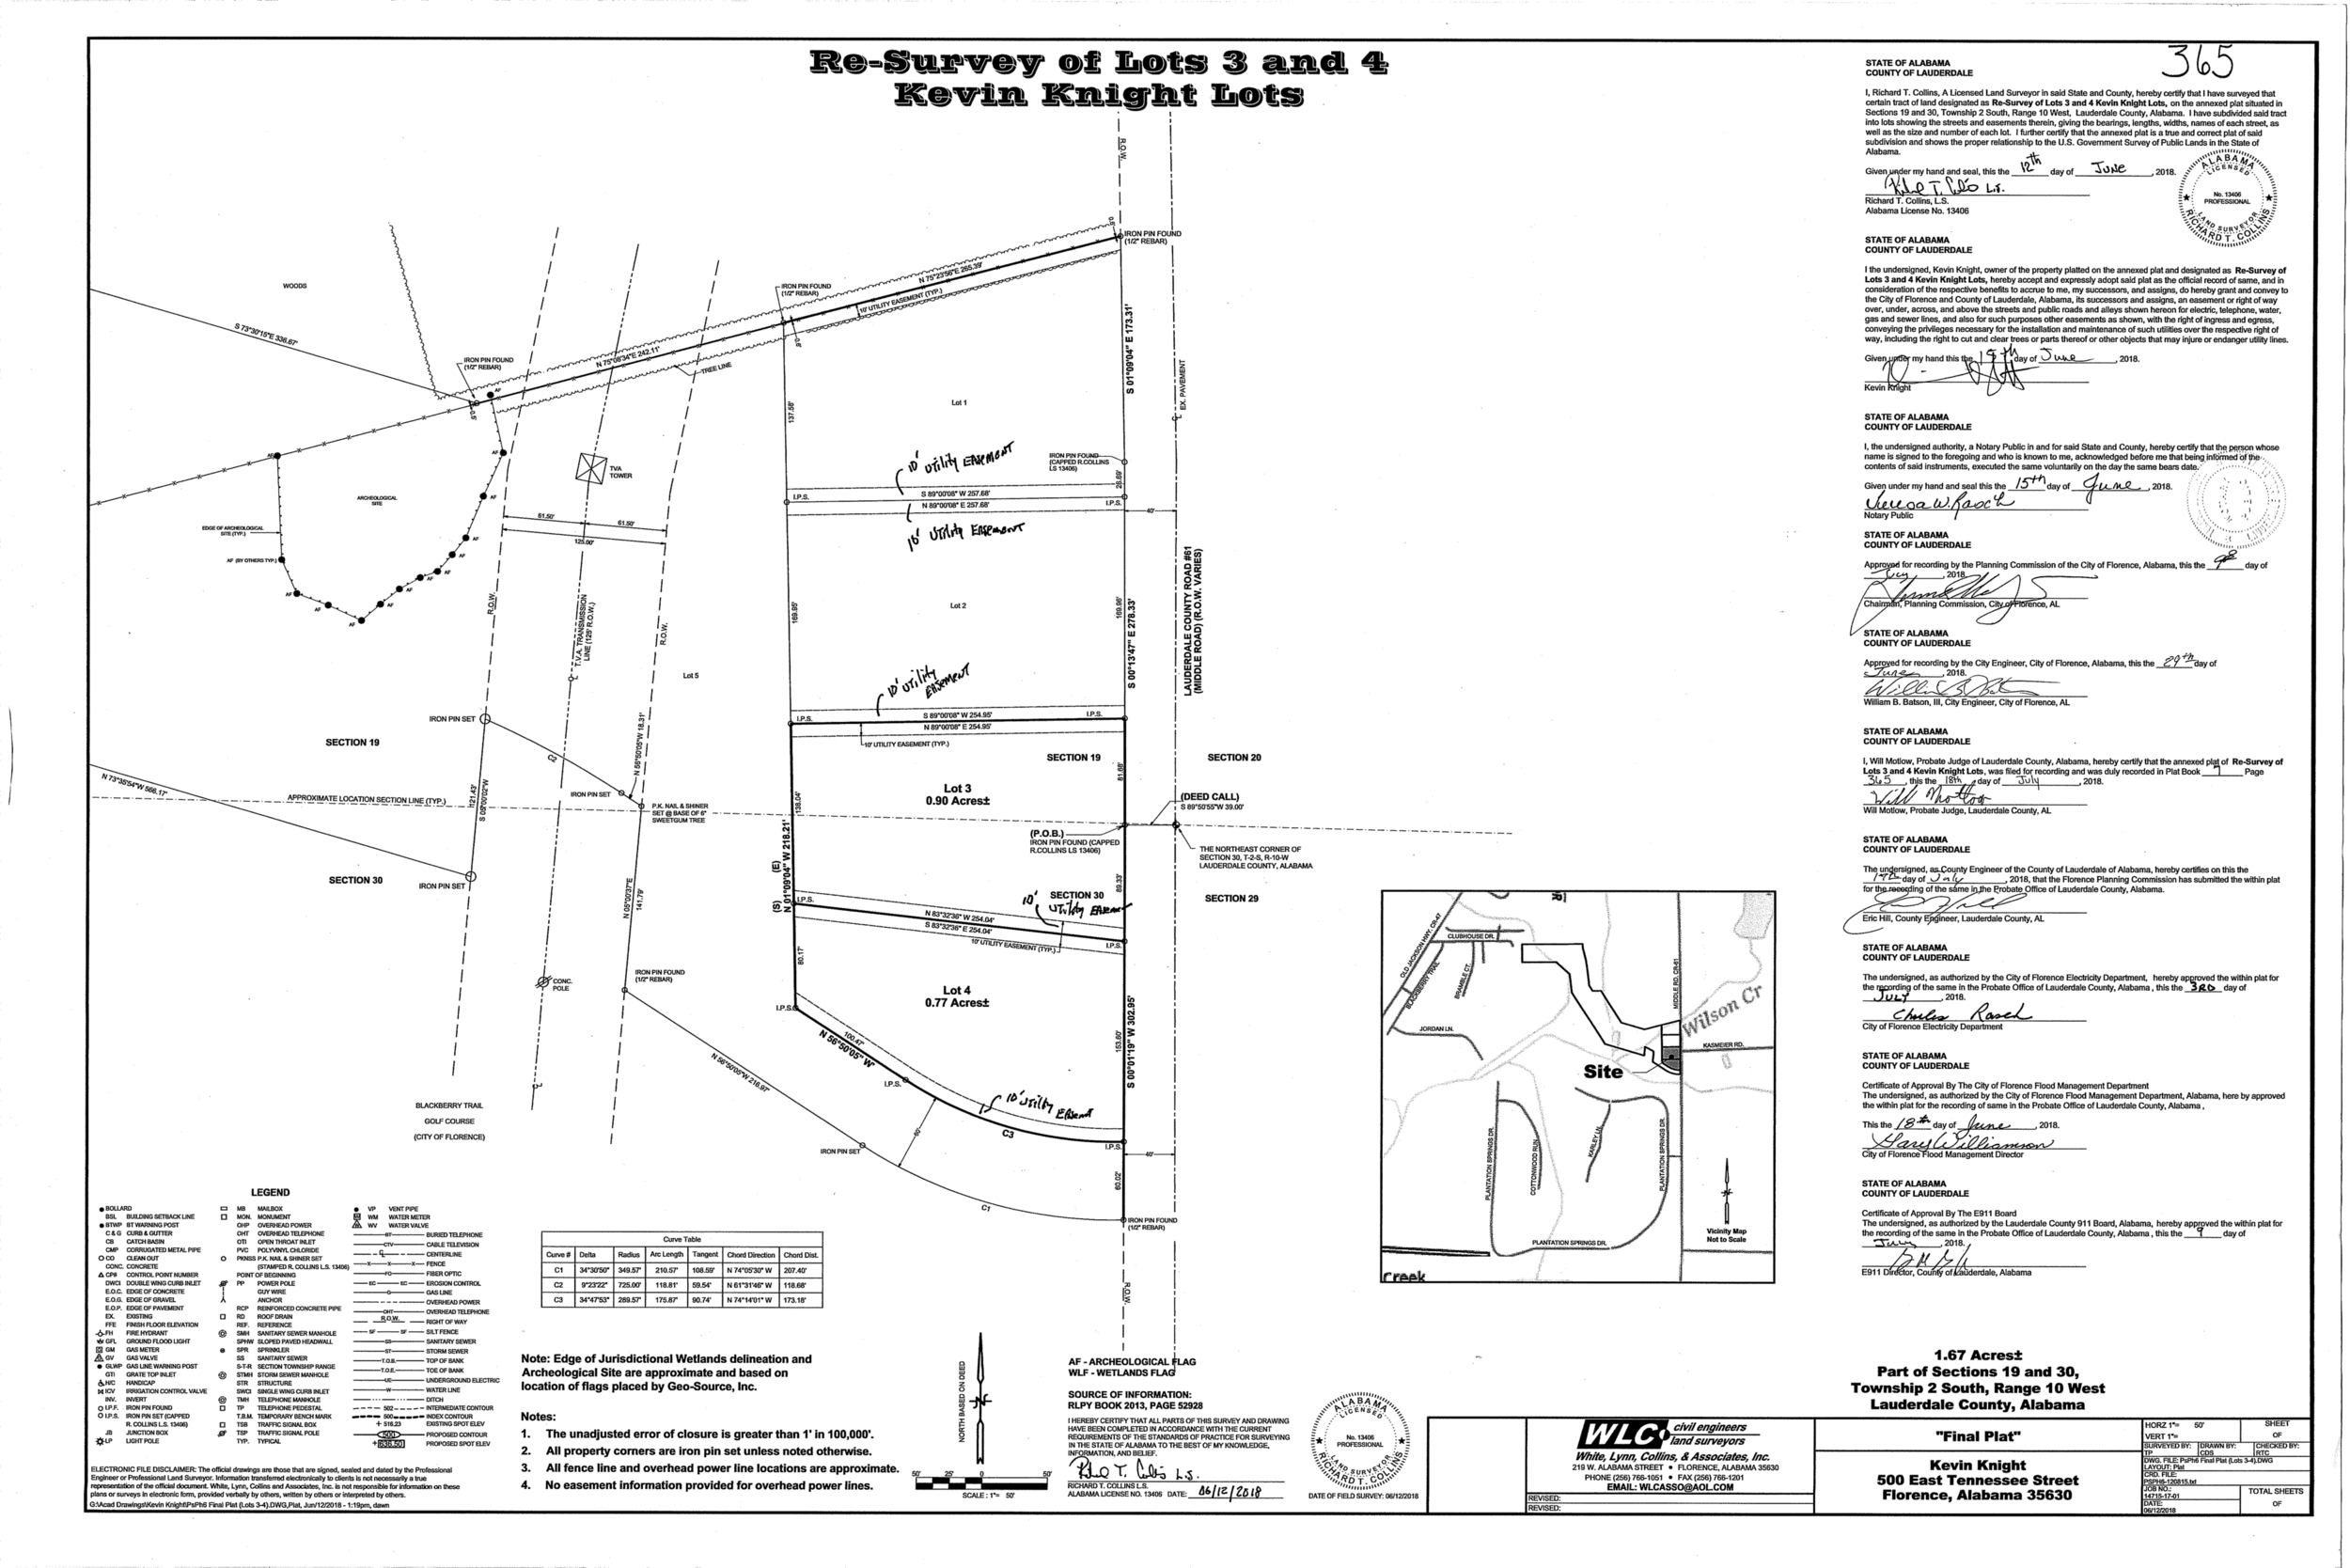 Plat-Kevin Knight Lots Resurvey of Lots 3-4-1.png